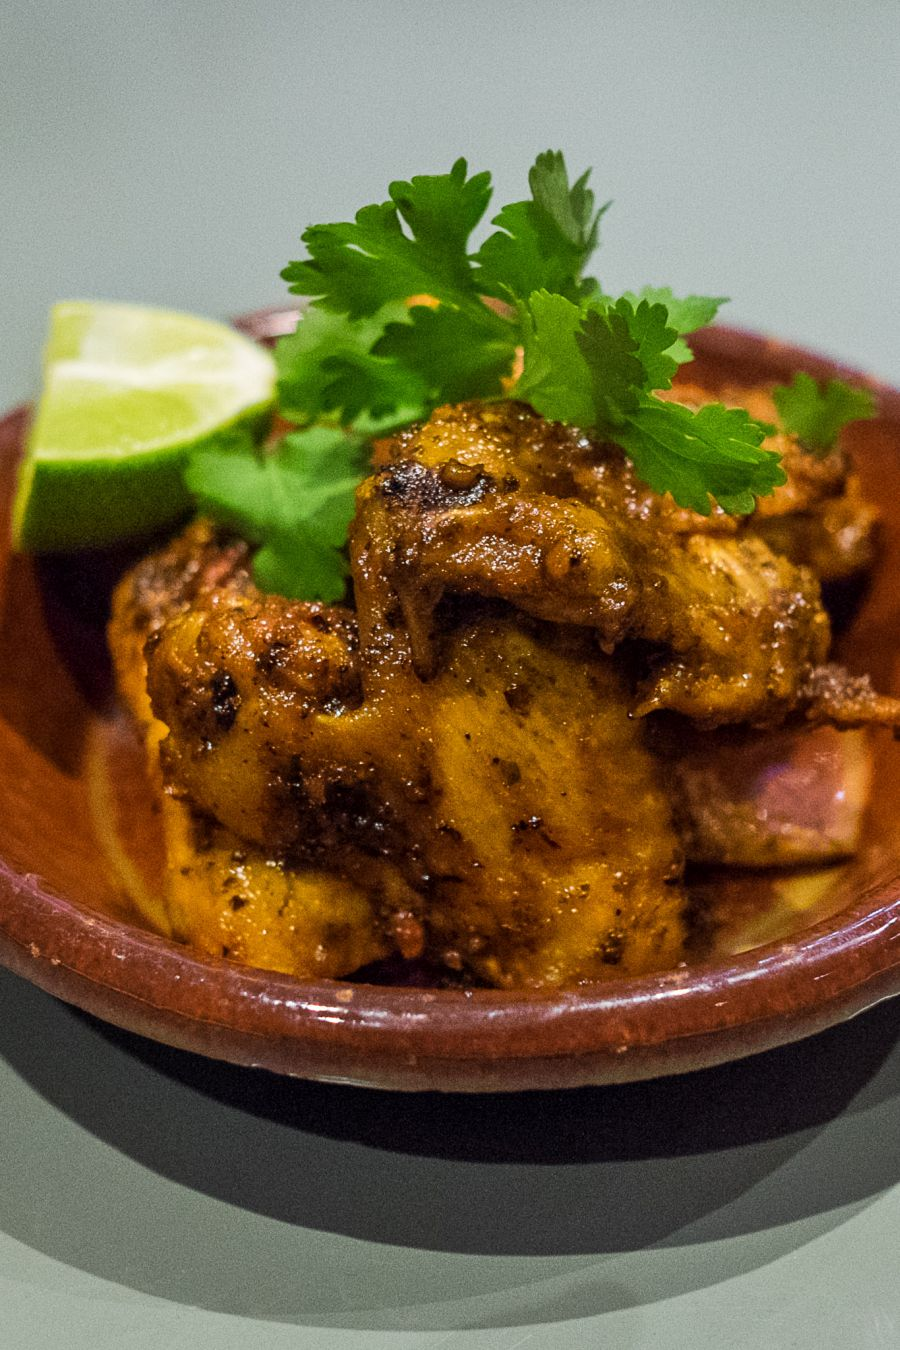 Fried harissa chicken wings (AU$16)